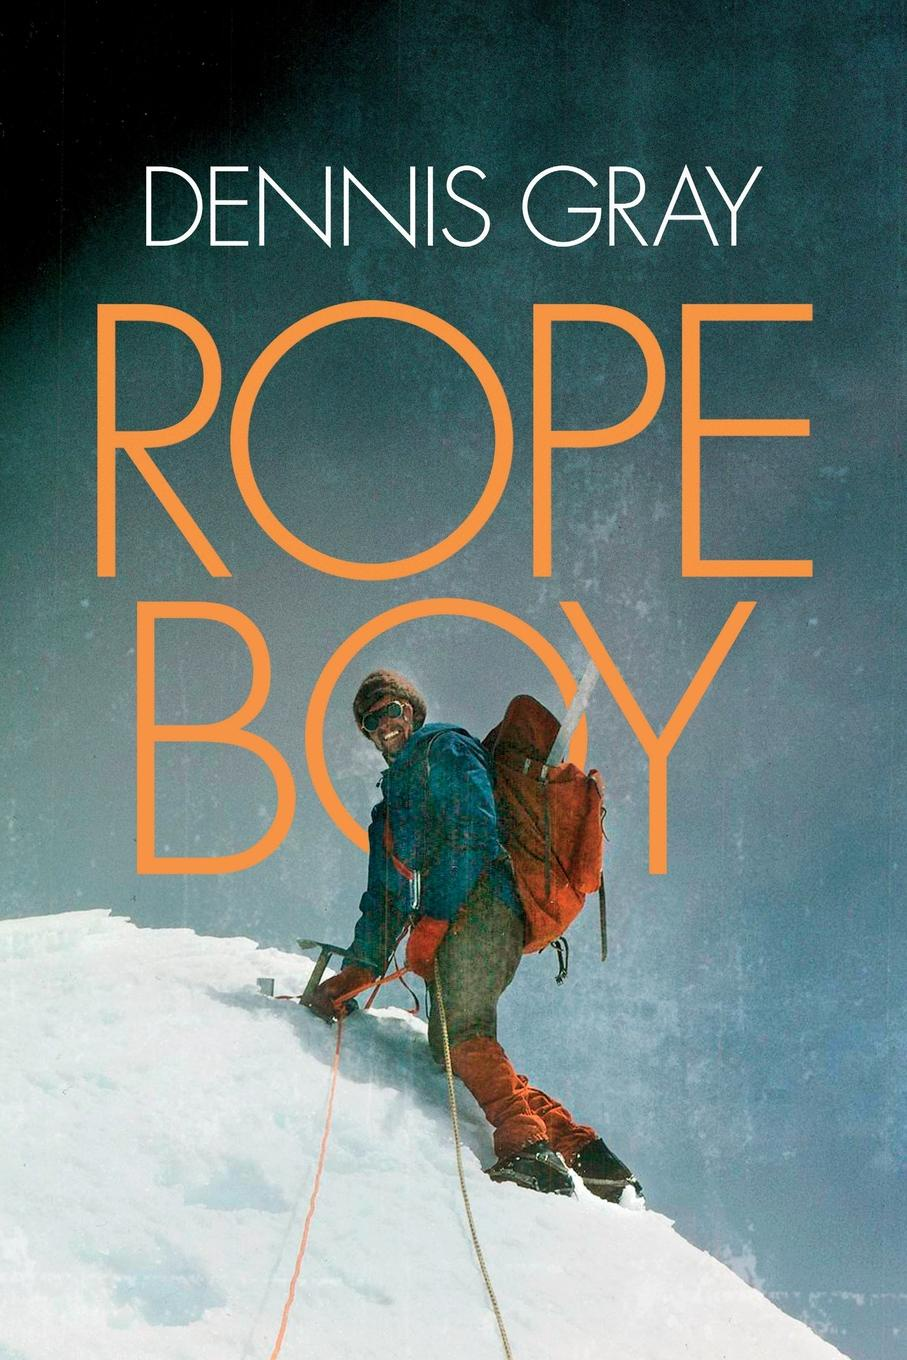 Dennis Gray Rope Boy. A life of climbing from Yorkshire to Yosemite the boy in the snow